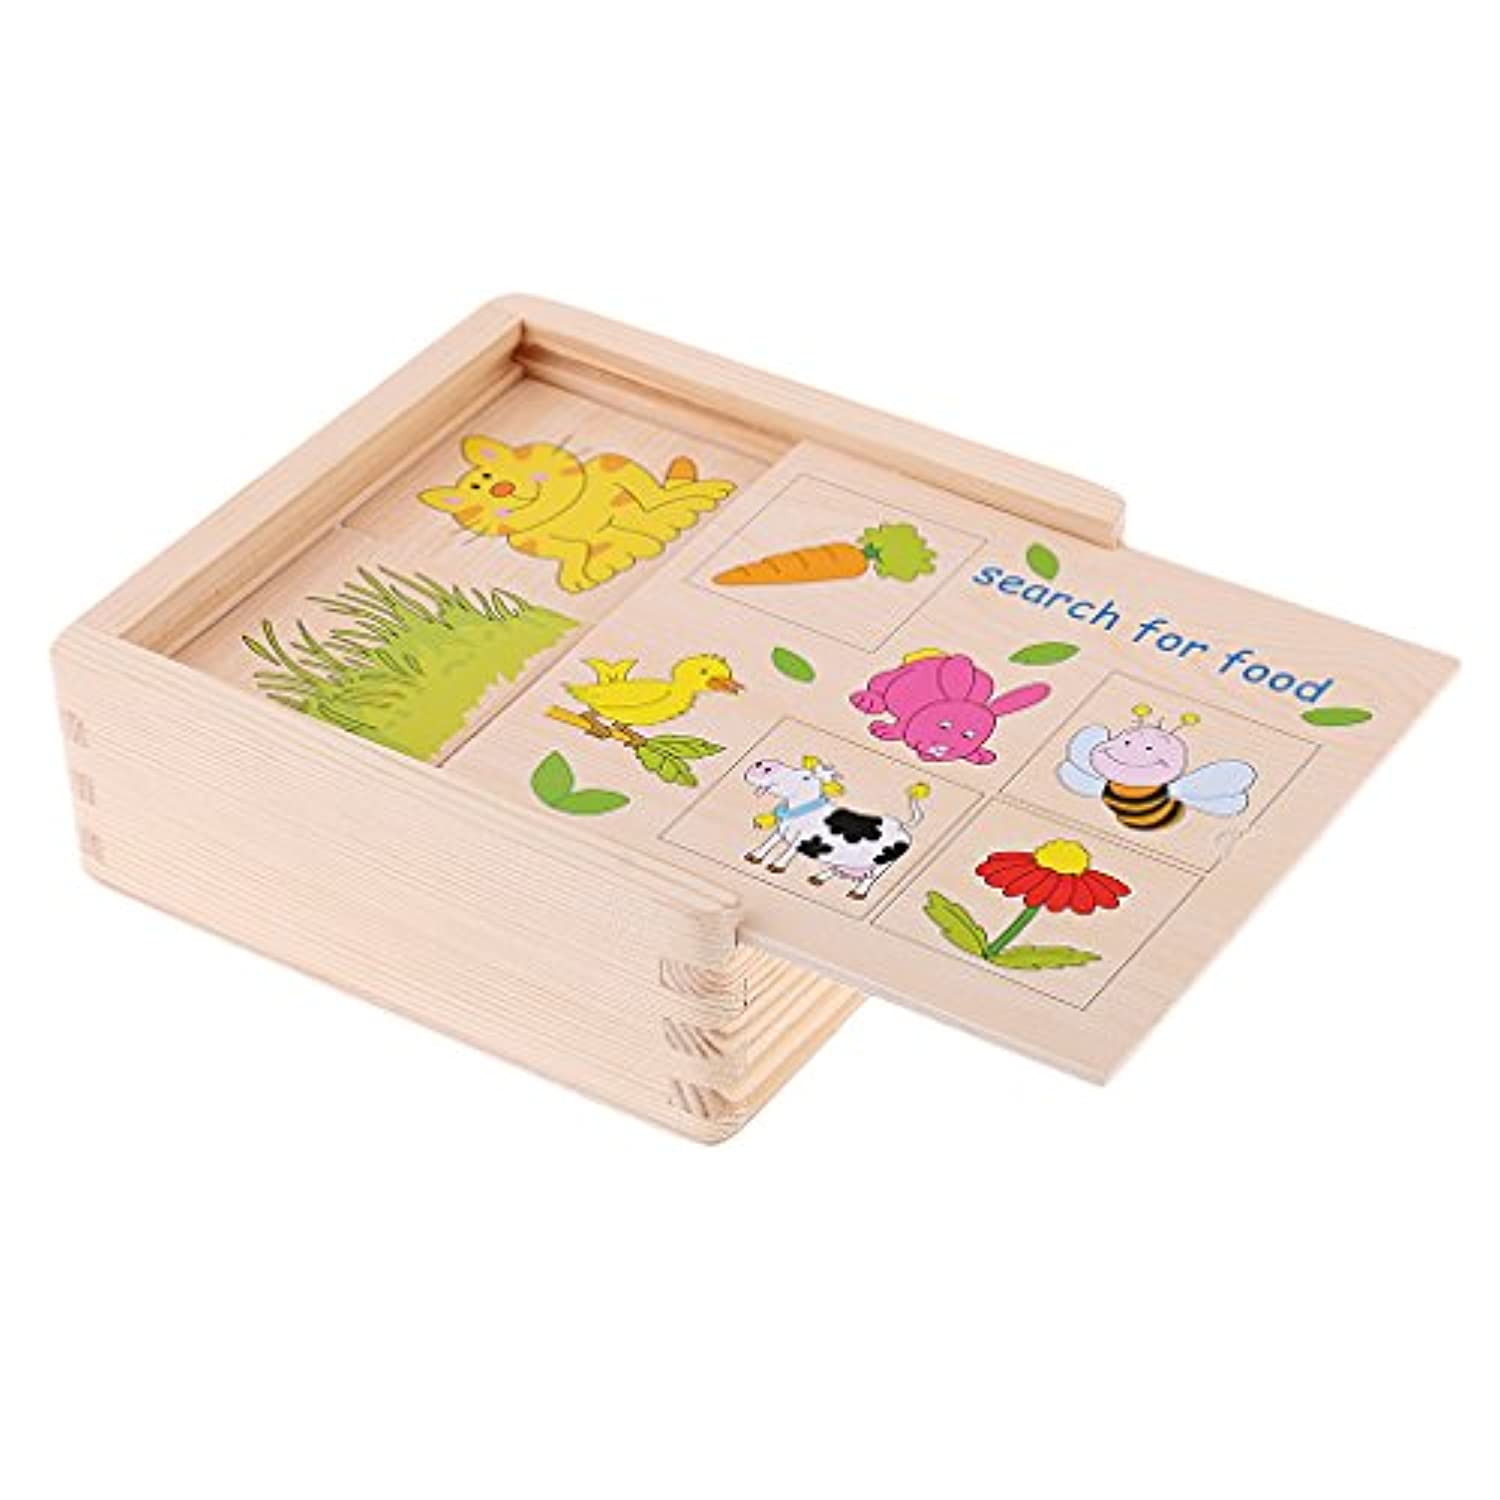 MagiDeal Wooden Animal FoodペアリングMatching Toys for Kidsホームファミリゲームセットギフト